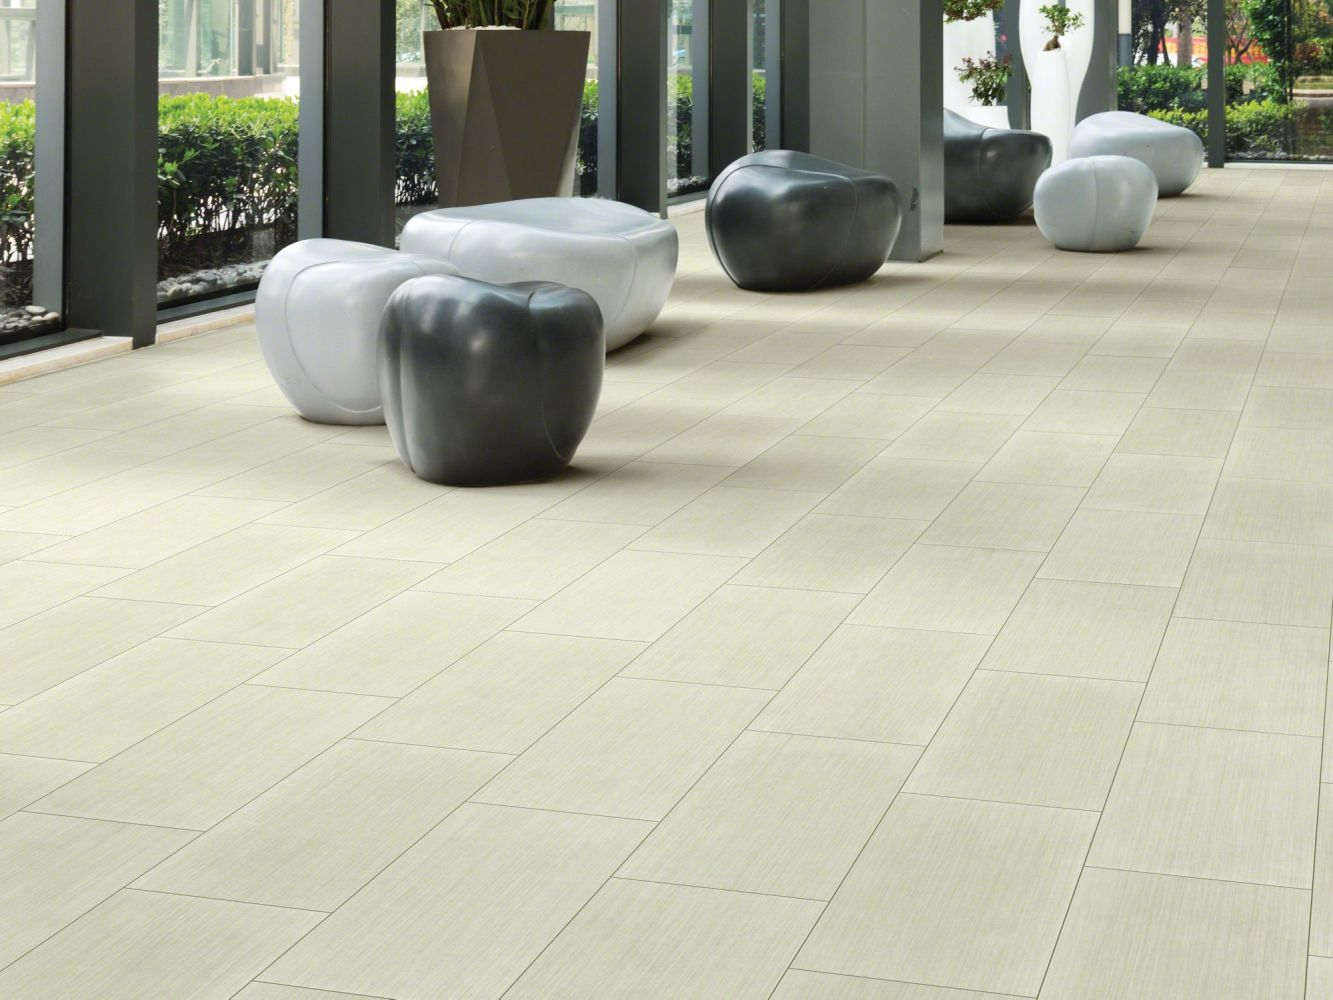 Shaw Floors Vinyl Residential Intrepid Tile Plus Arid 00162_2026V